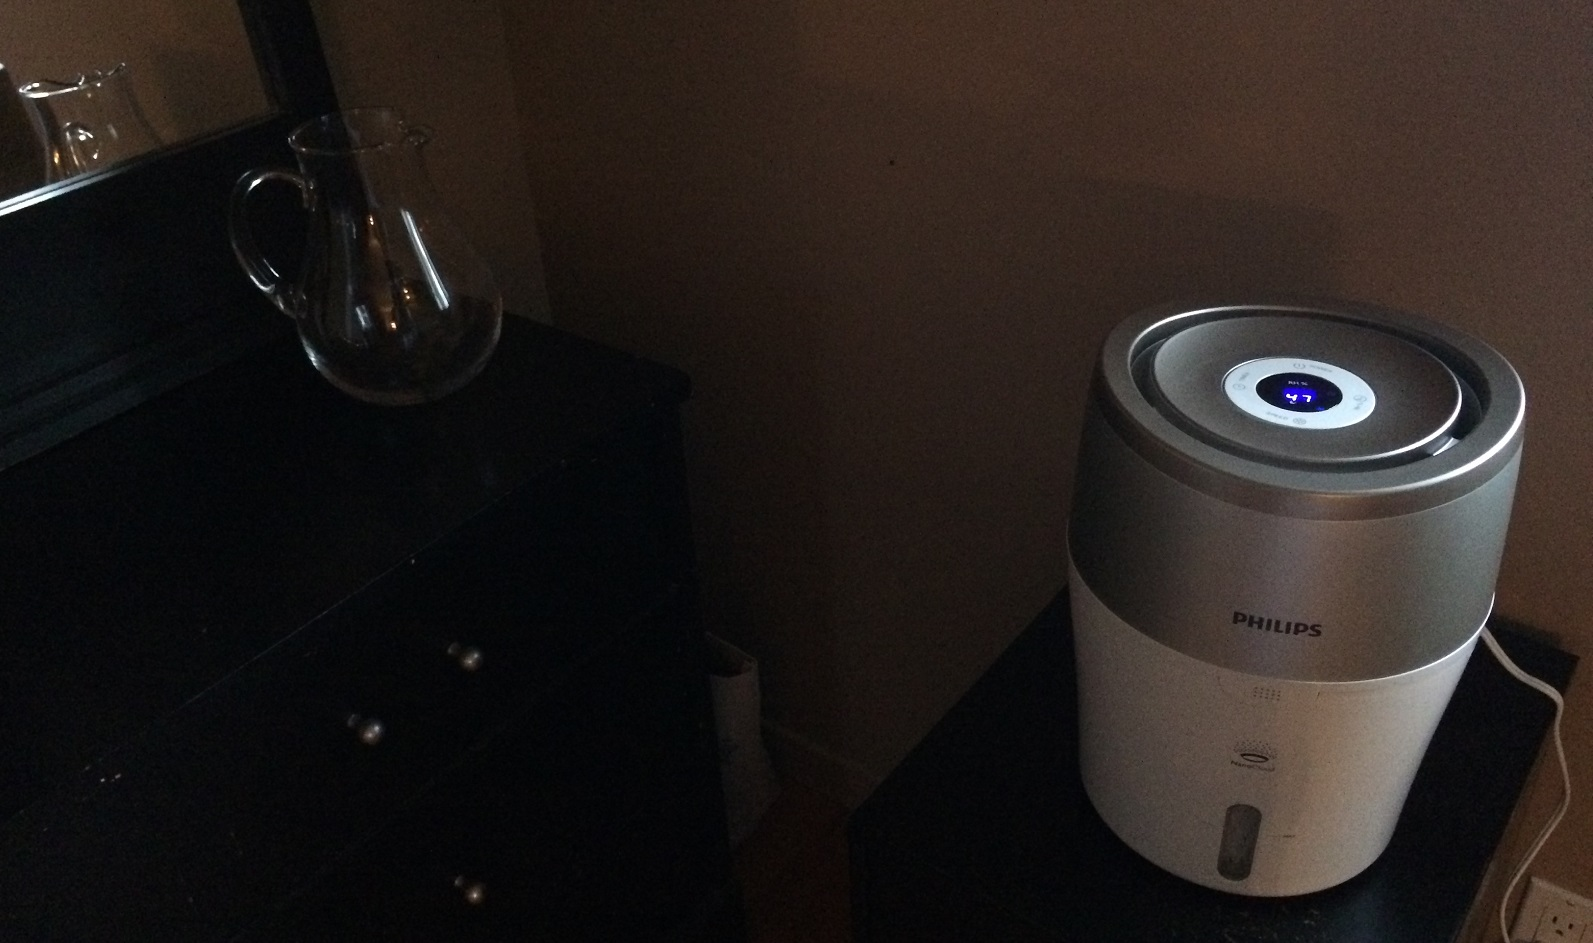 Humidificateur Philips 4